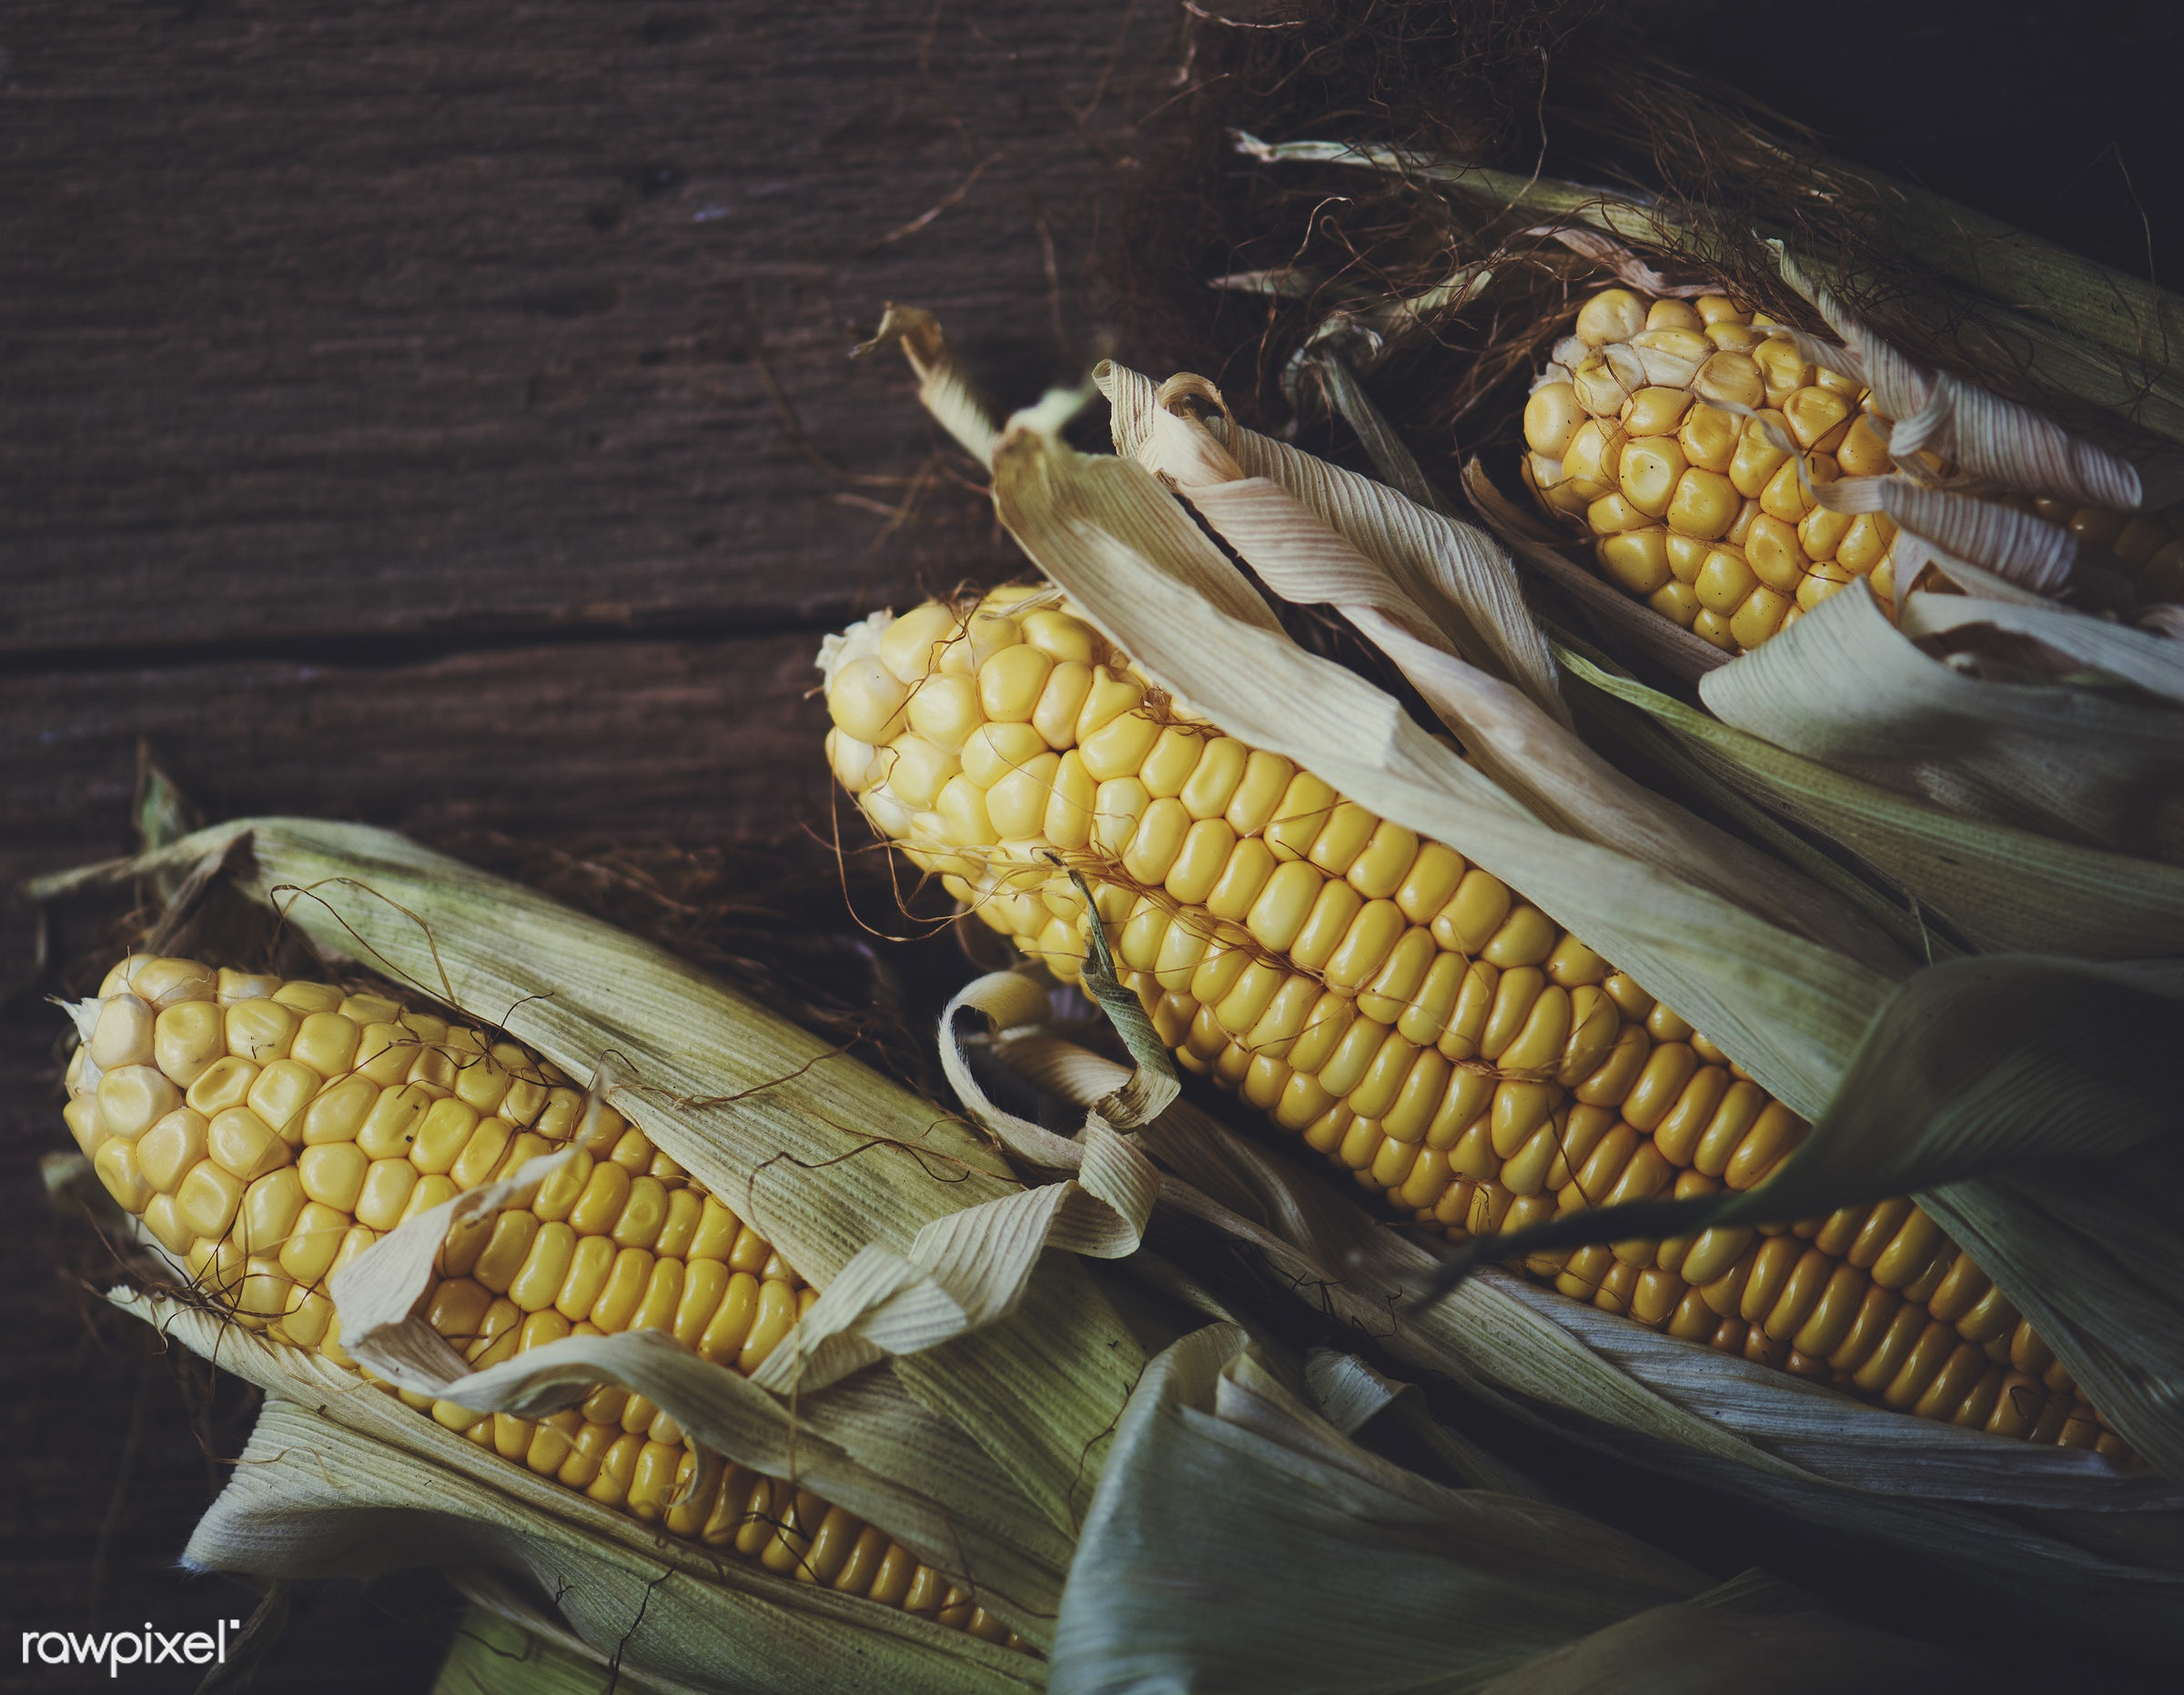 raw, maize, type, gastronomy, corn, kind, fresh, vegetarian, cooking, ingredient, gourmet, nourishment, vegetables, culinary...